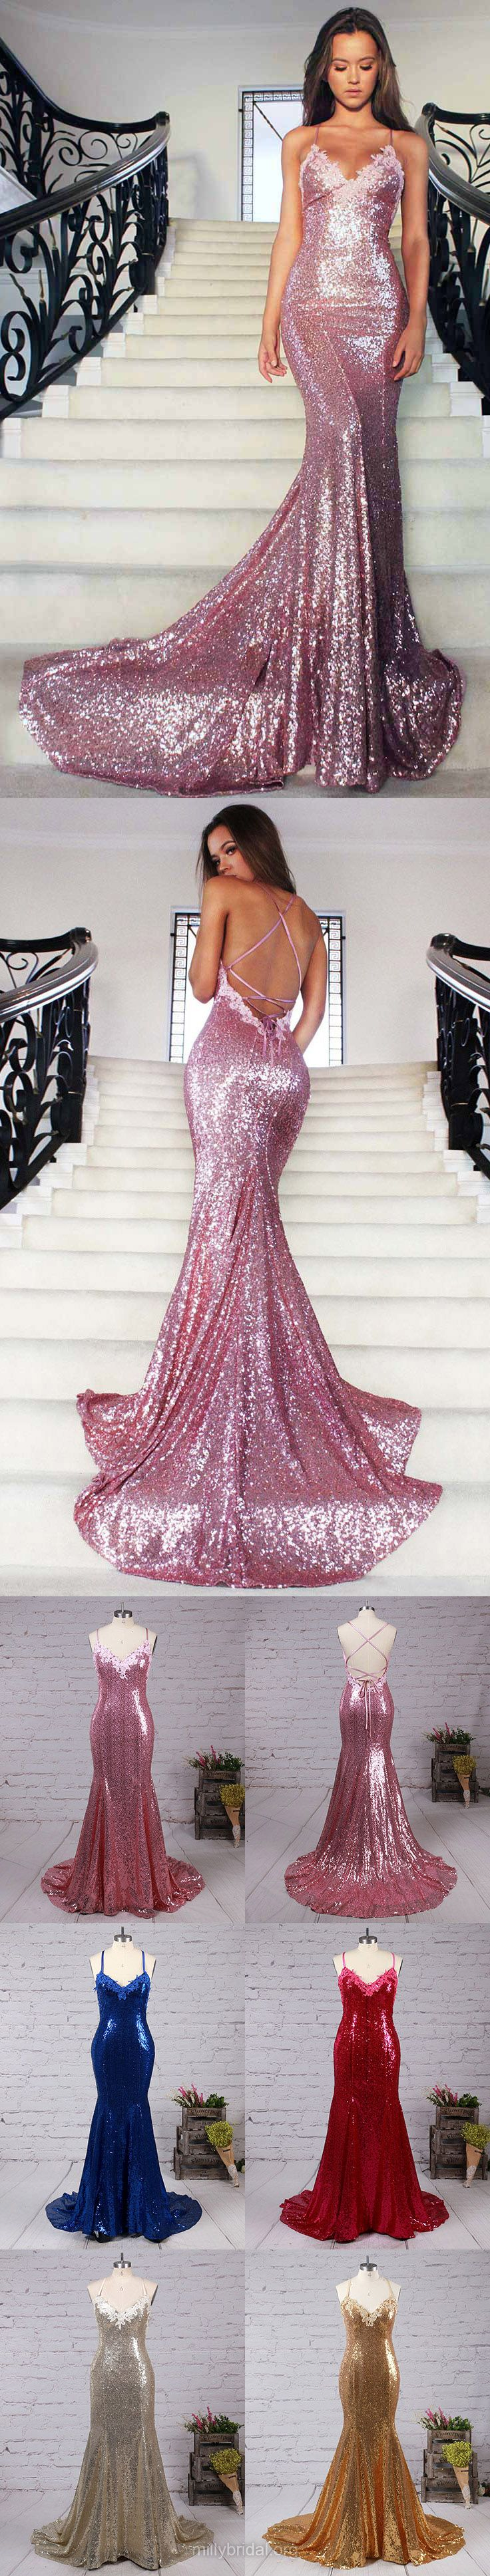 Prom dresses lace prom dresses sequined prom dresses long prom